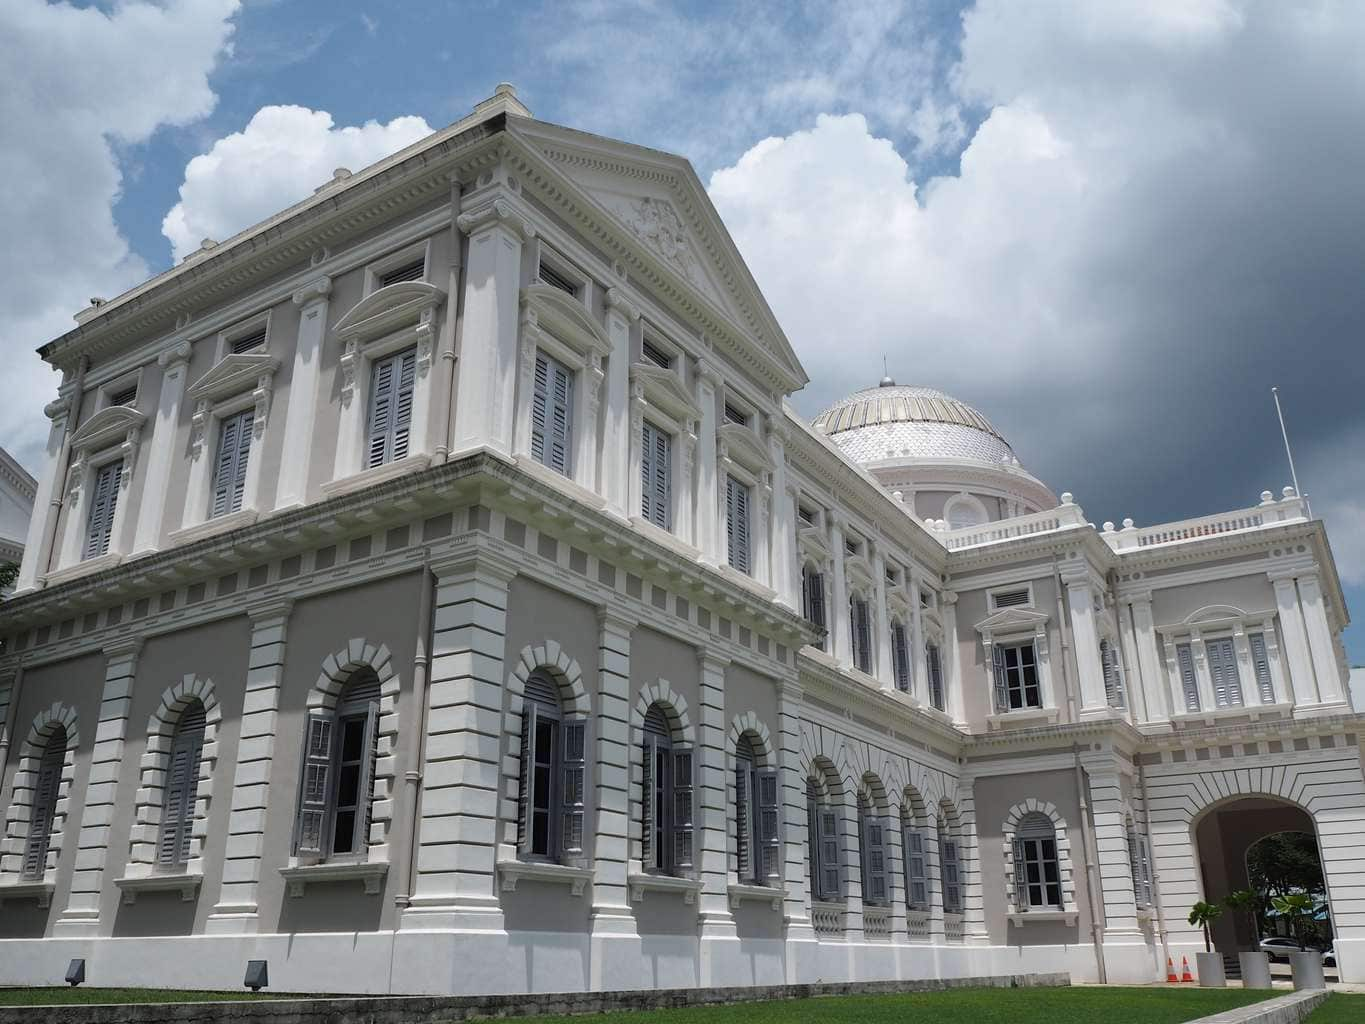 National Museum of Singapore colonial architecture